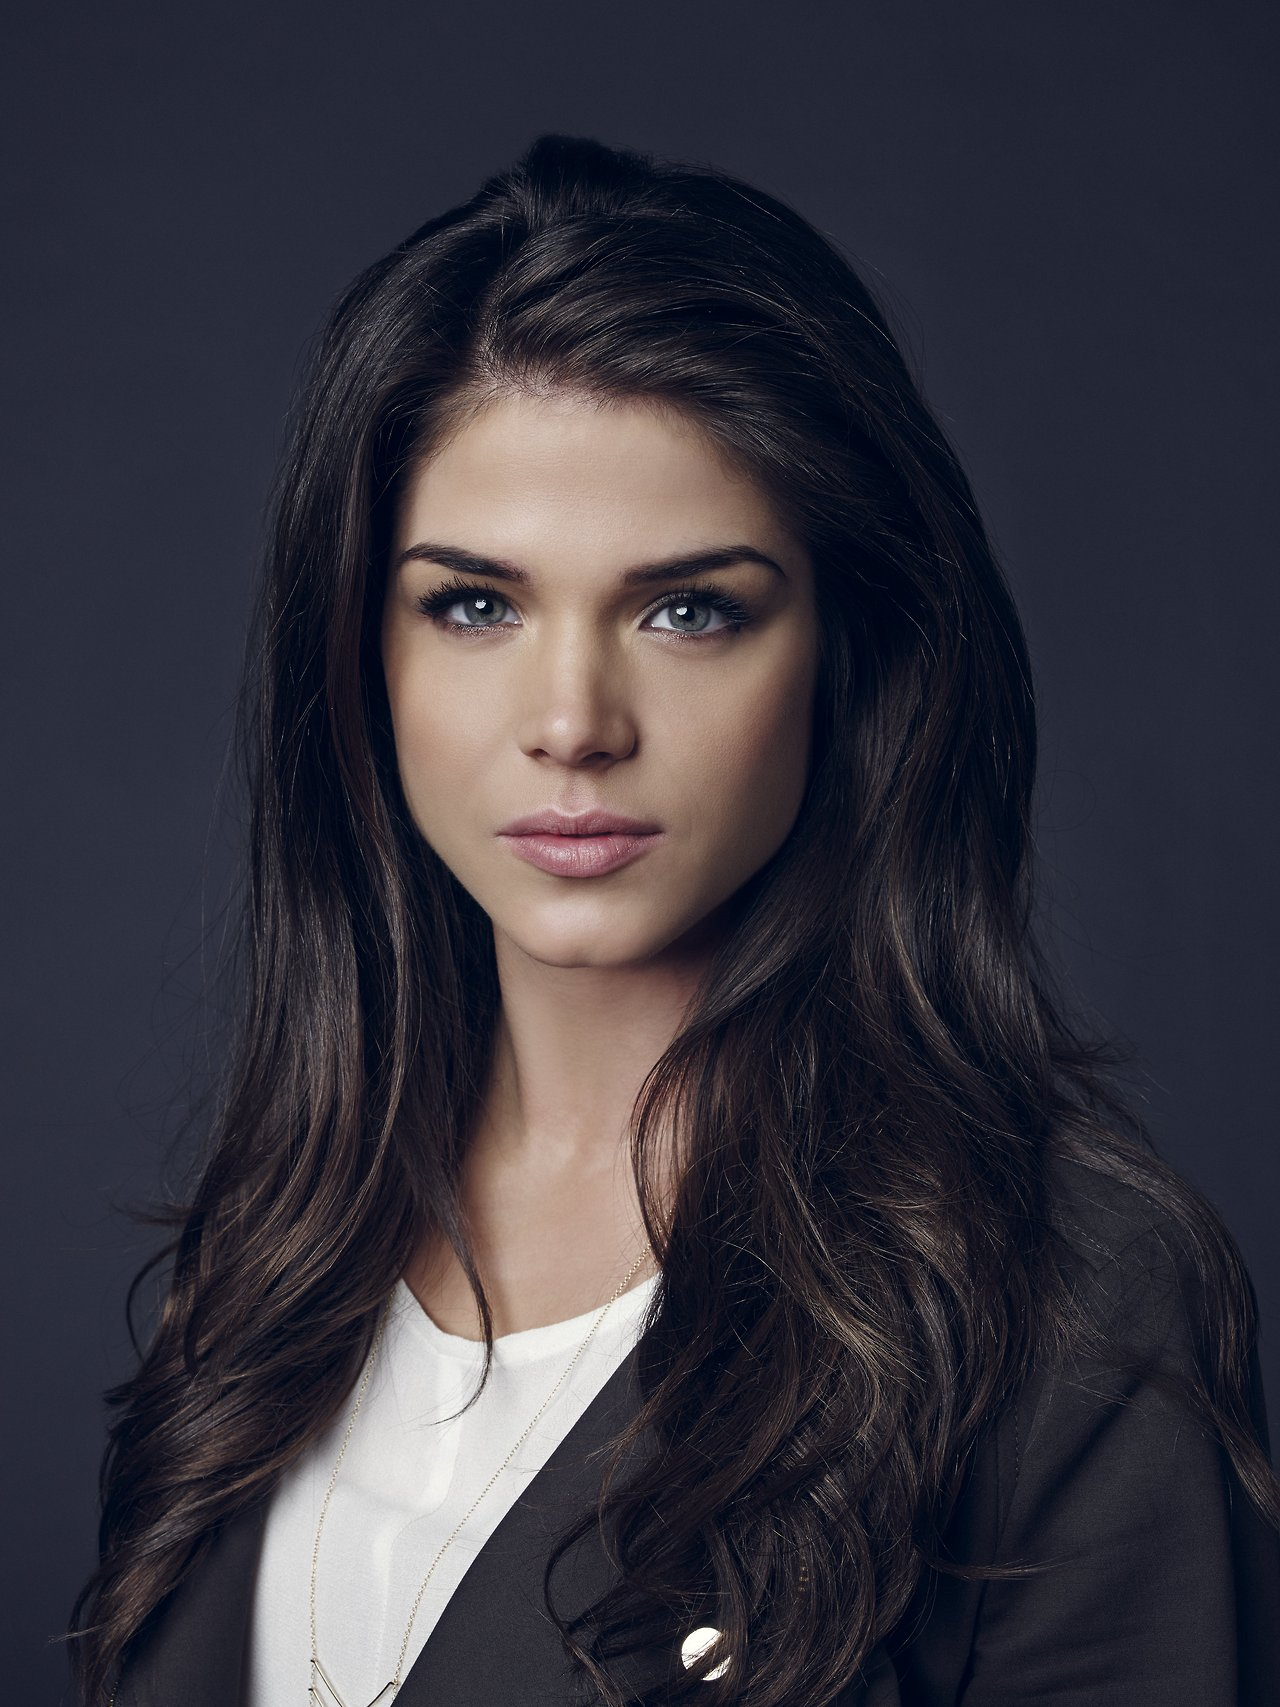 The 100 Tv Show Images Marie Avgeropoulos Hd Wallpaper